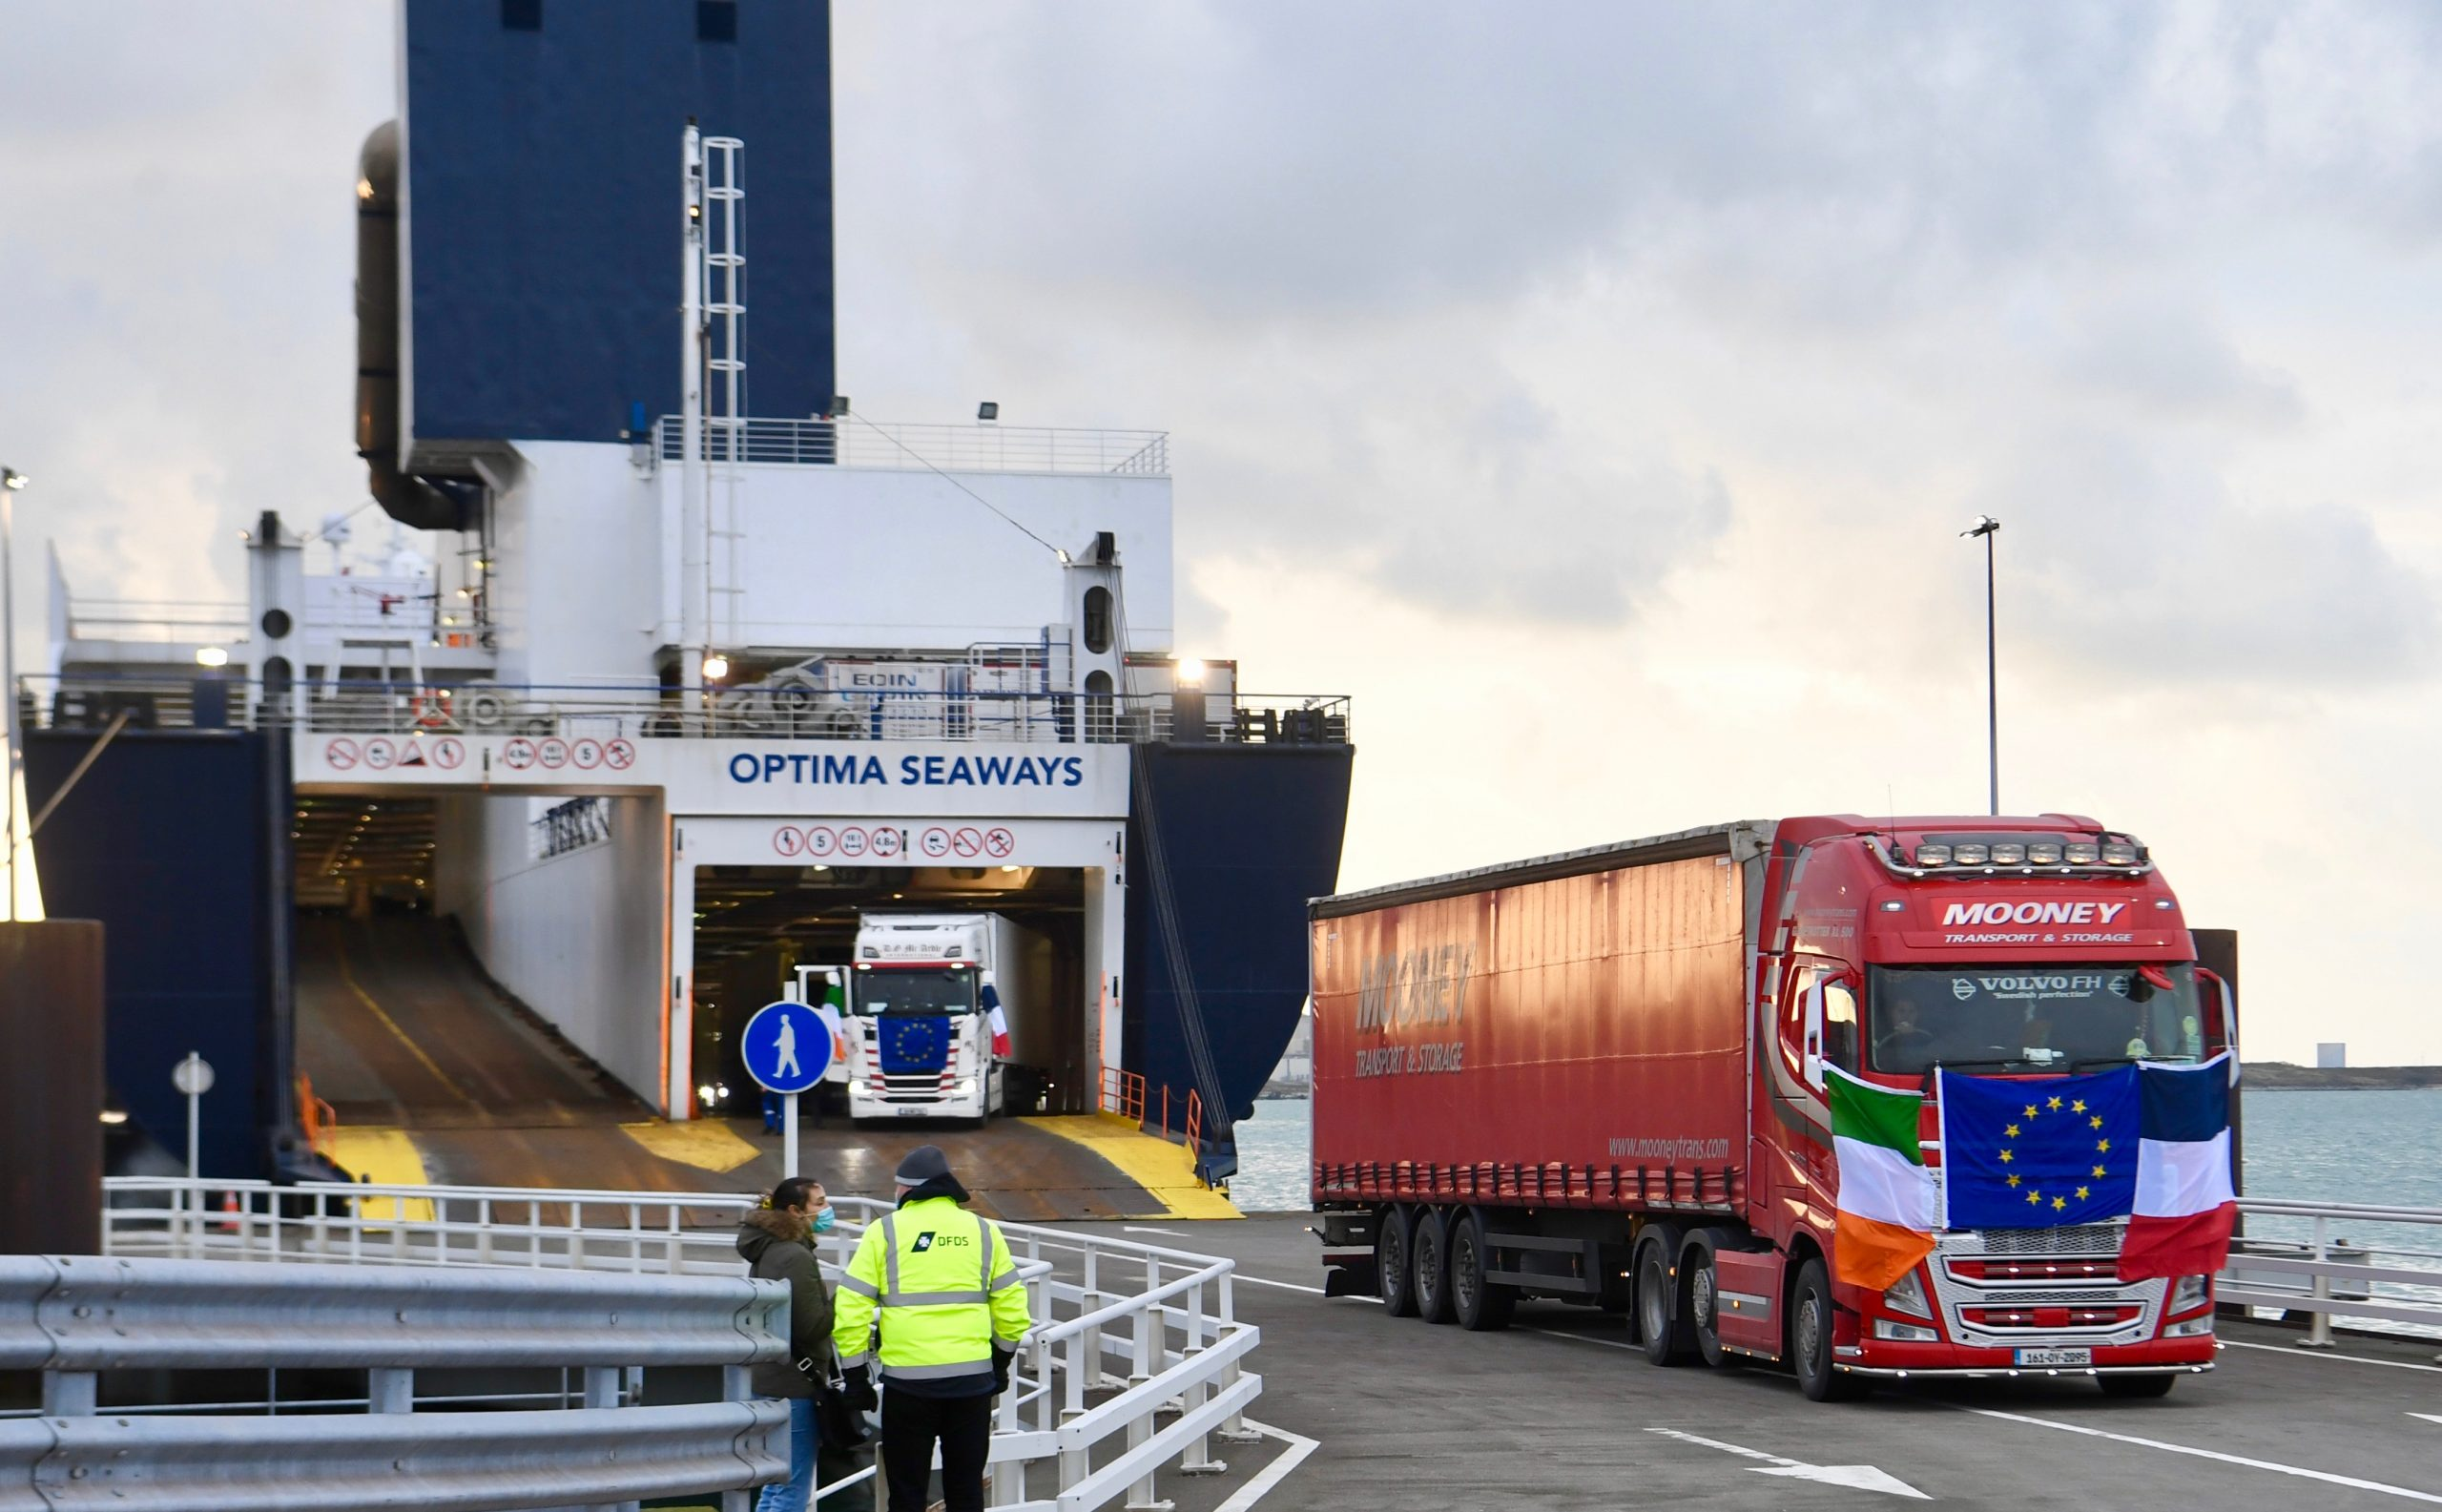 Brexit ripples continue to spread through shipping routes and services